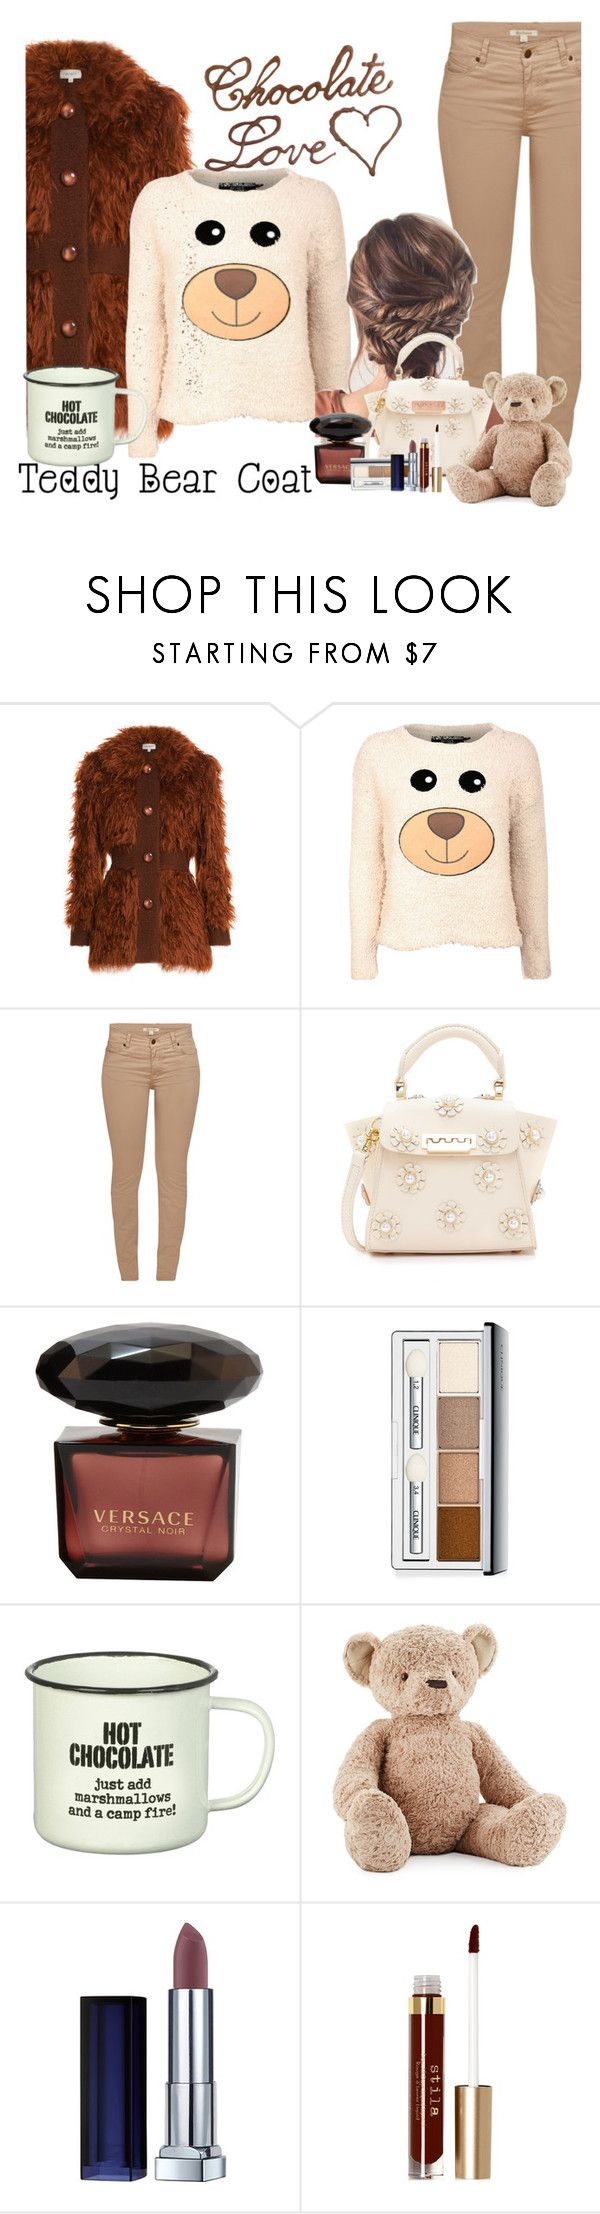 """""""Curled up"""" by stephaniefb ❤ liked on Polyvore featuring Isa Arfen, Pilot, Barbour, ZAC Zac Posen, Clinique, Parlane, Jellycat, Maybelline and Stila"""